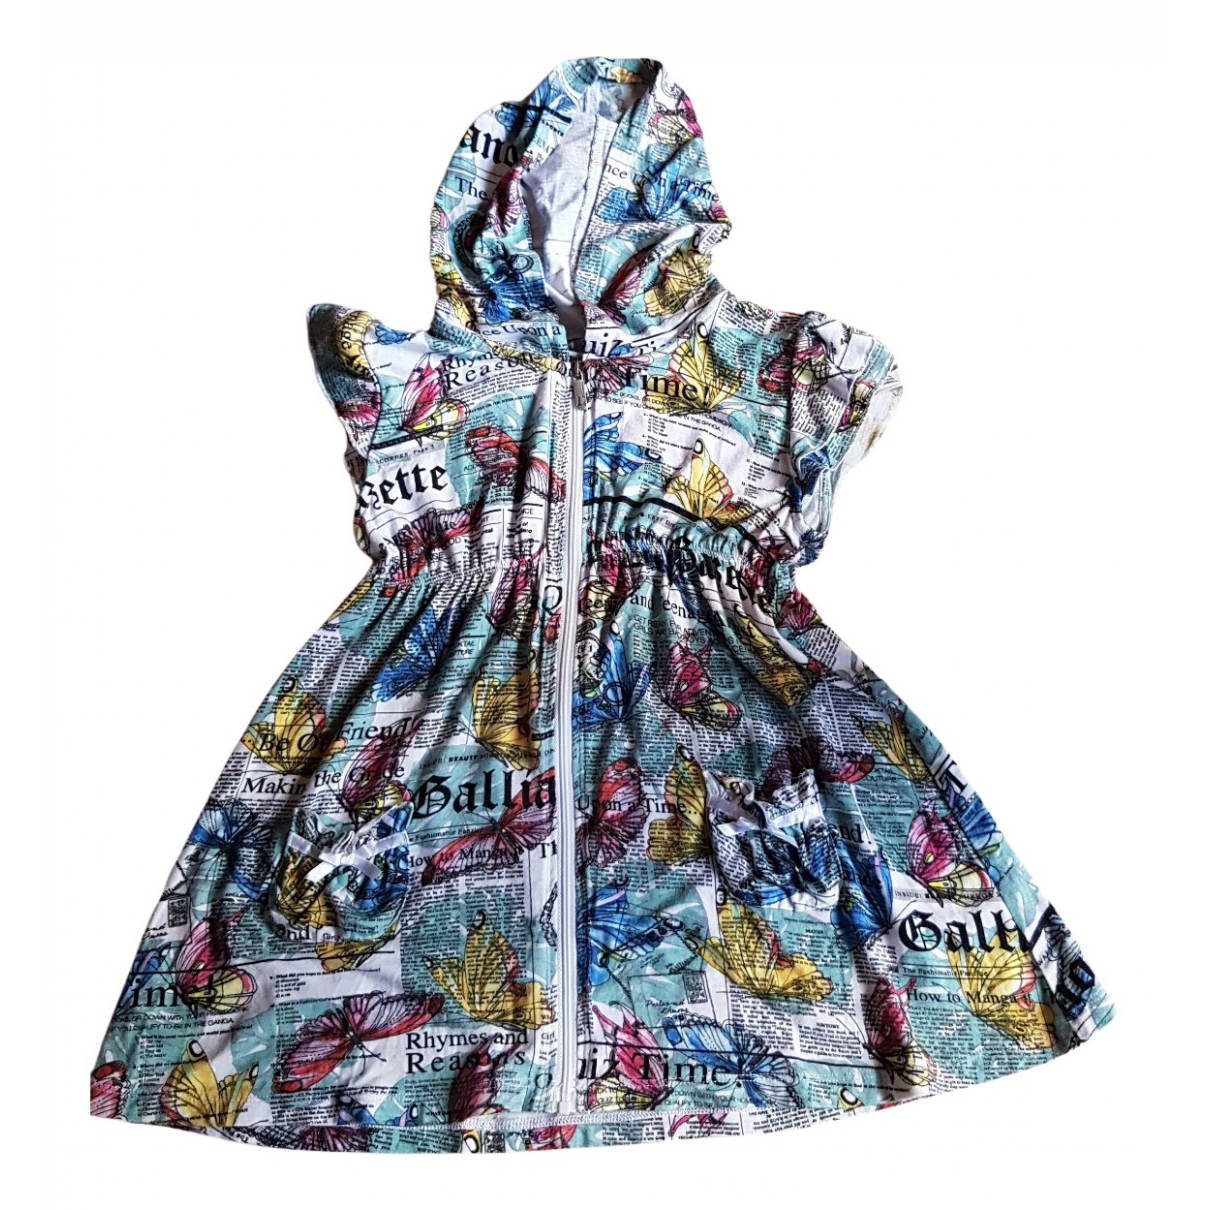 John Galliano N Multicolour Cotton dress for Kids 4 years - up to 102cm FR